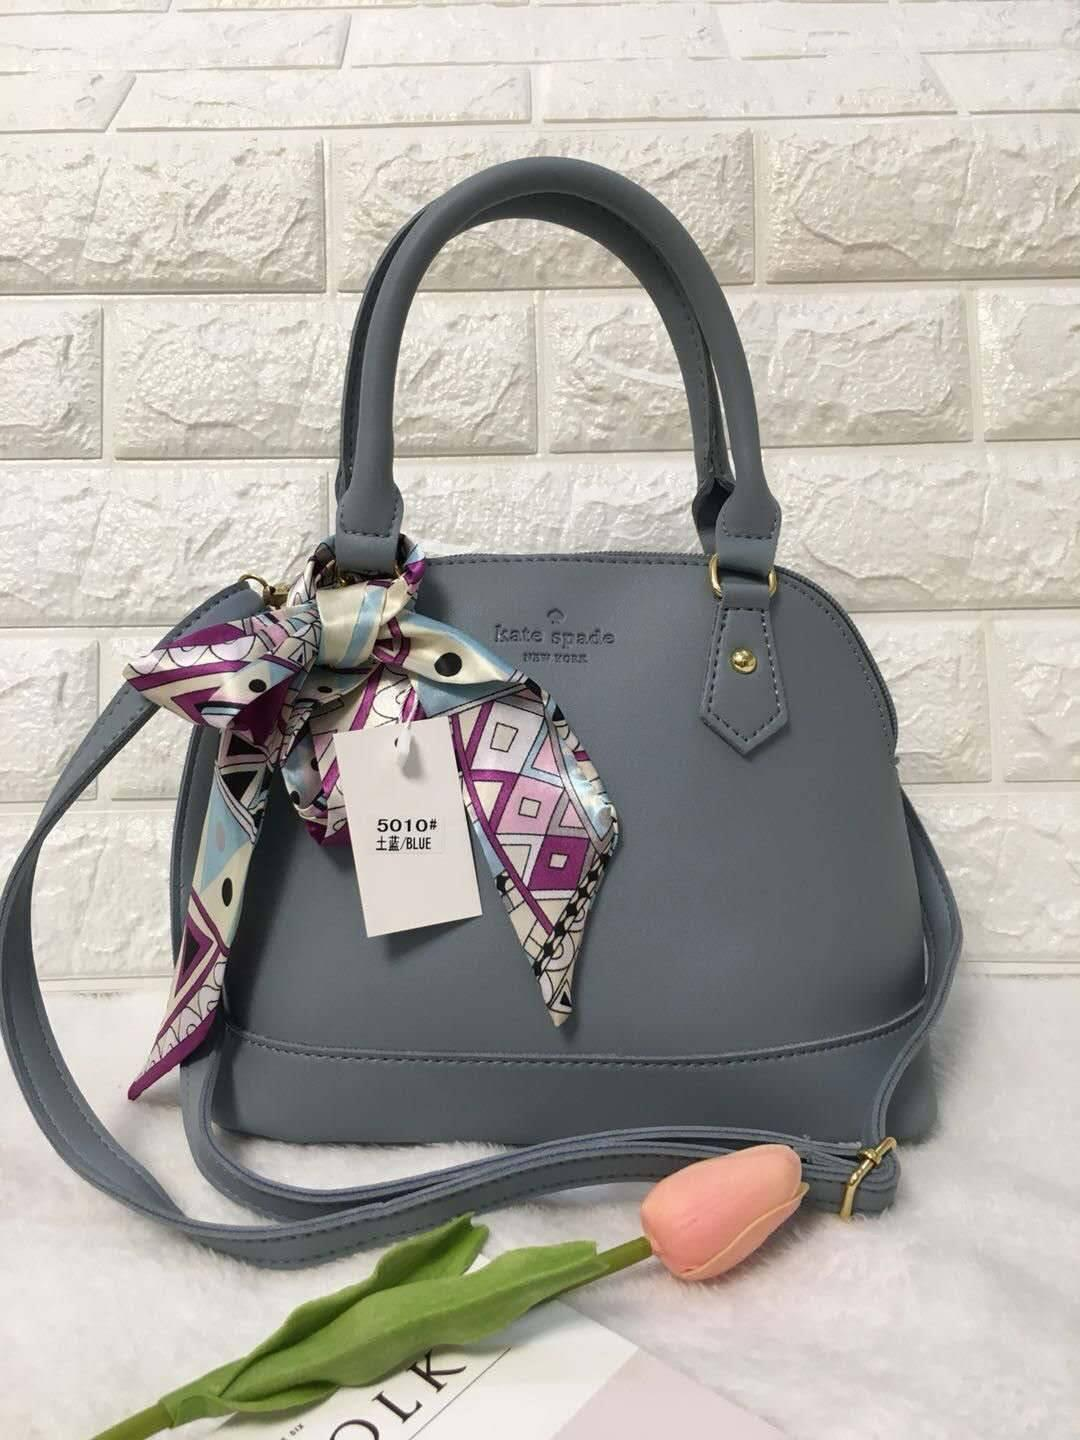 Womens Totes for sale - Tote Bags for Women online brands, prices   reviews  in Philippines   Lazada.com.ph cfc18ed397